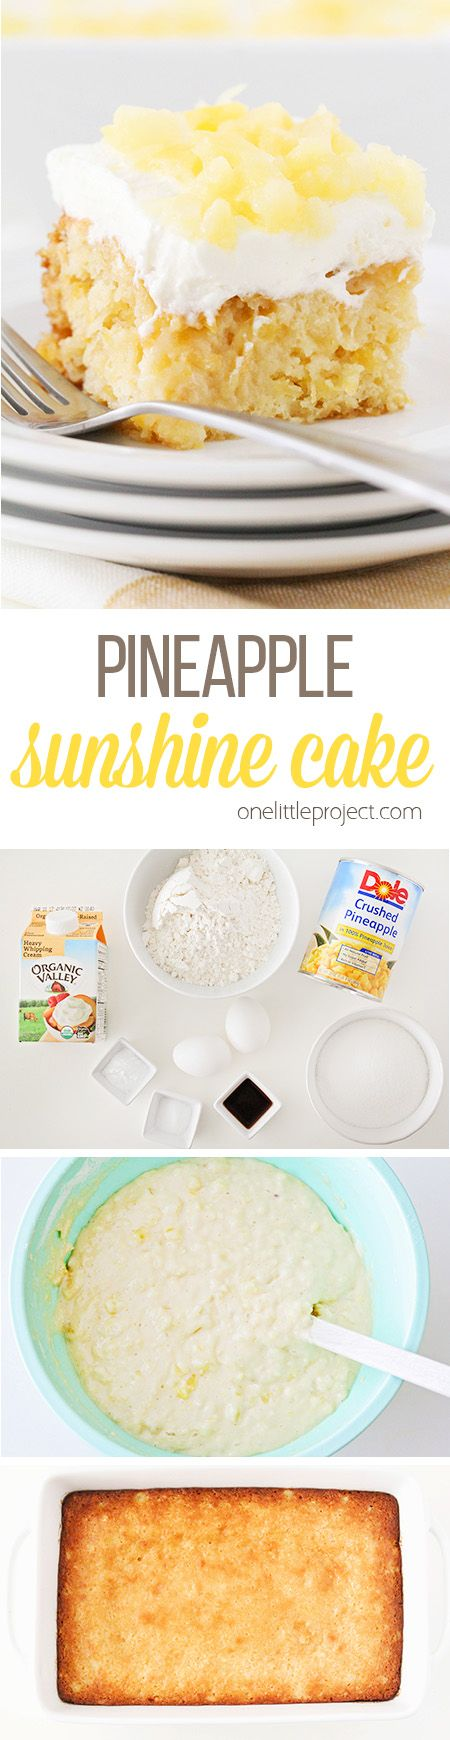 This light and fluffy pineapple sunshine cake tastes just like springtime! It's so easy to make and the perfect spring dessert!